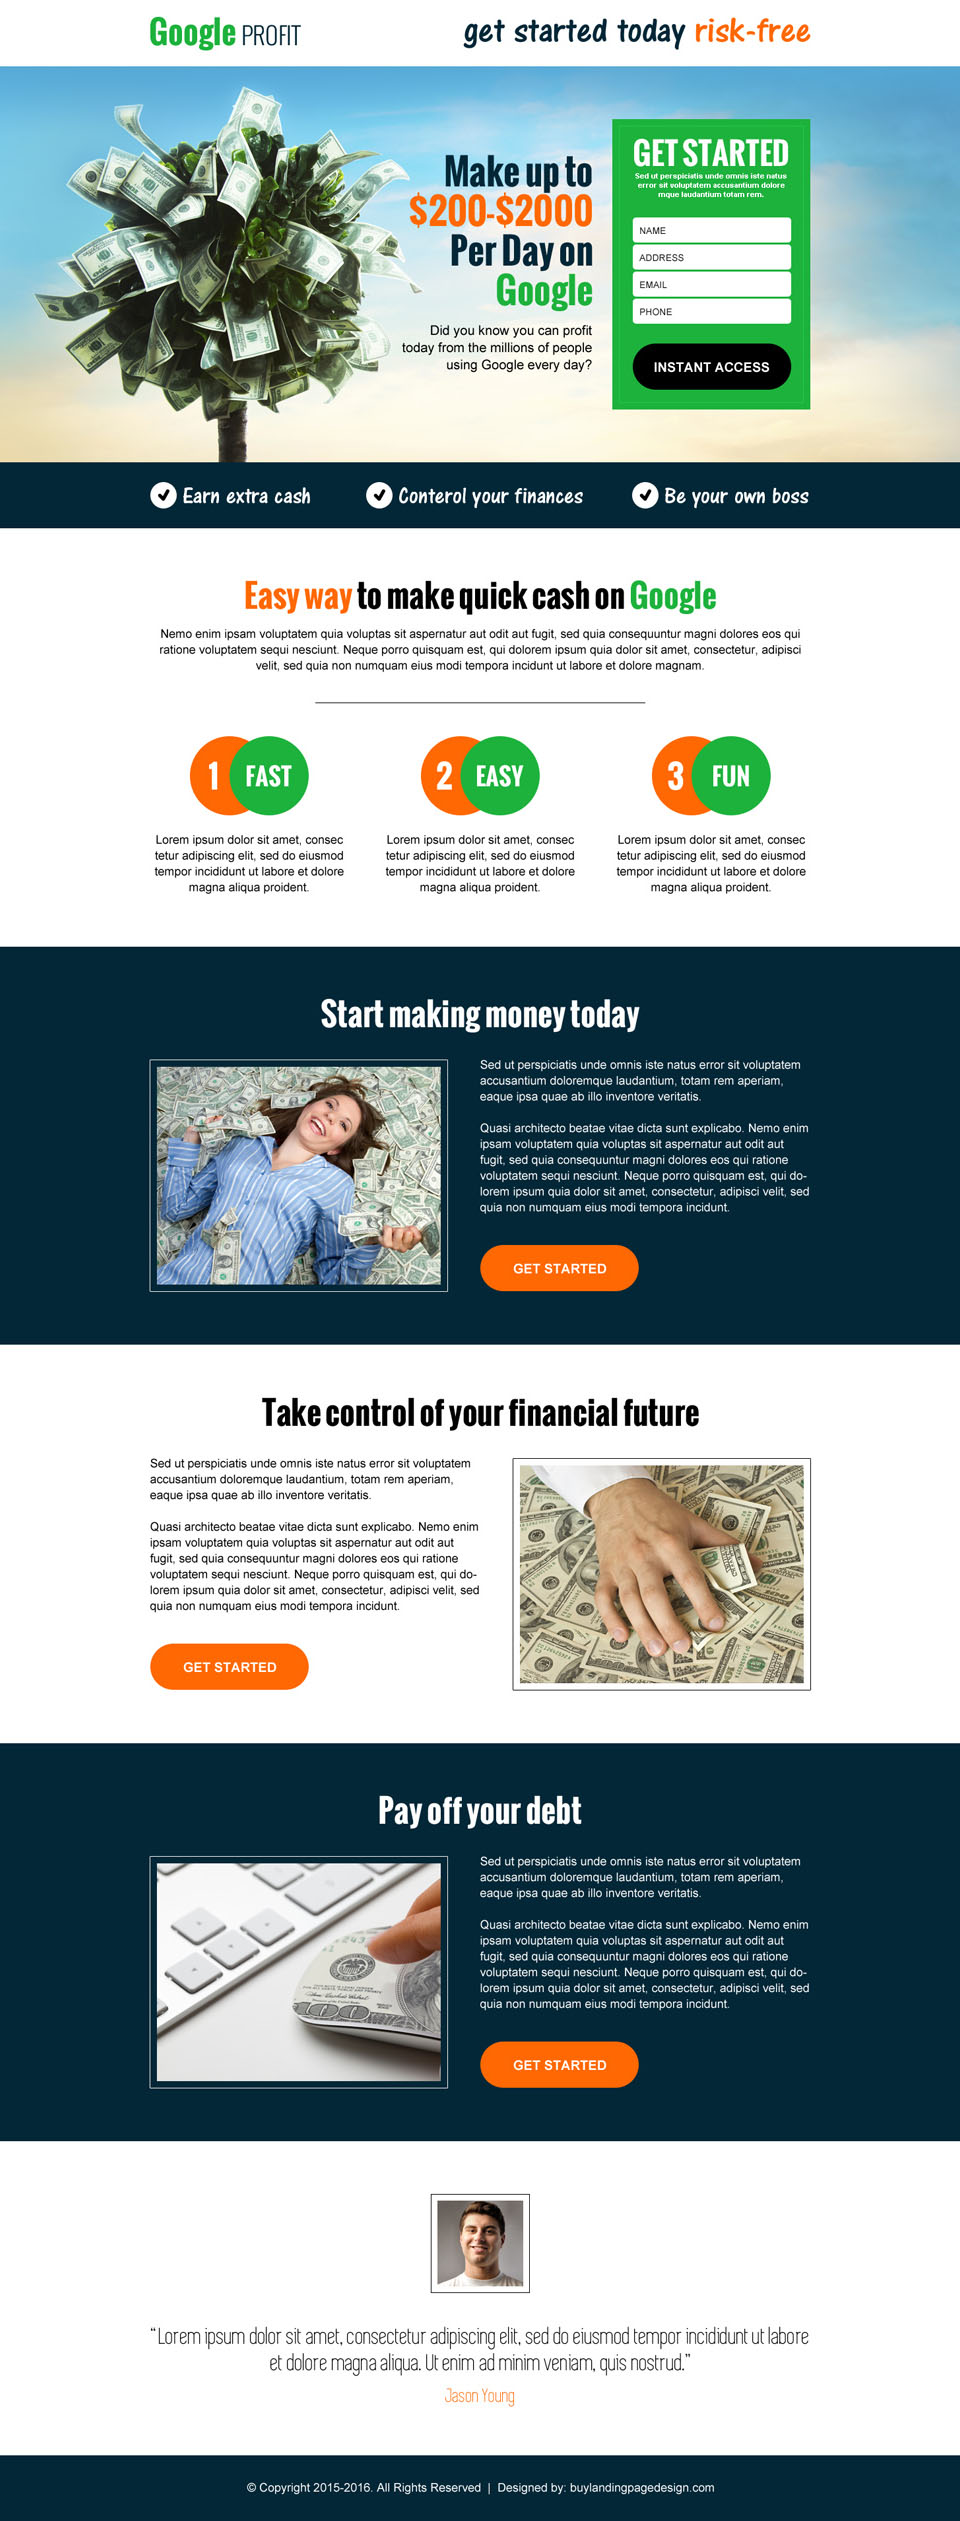 make-quick-cash-on-google-lead-capture-landing-page-design-015